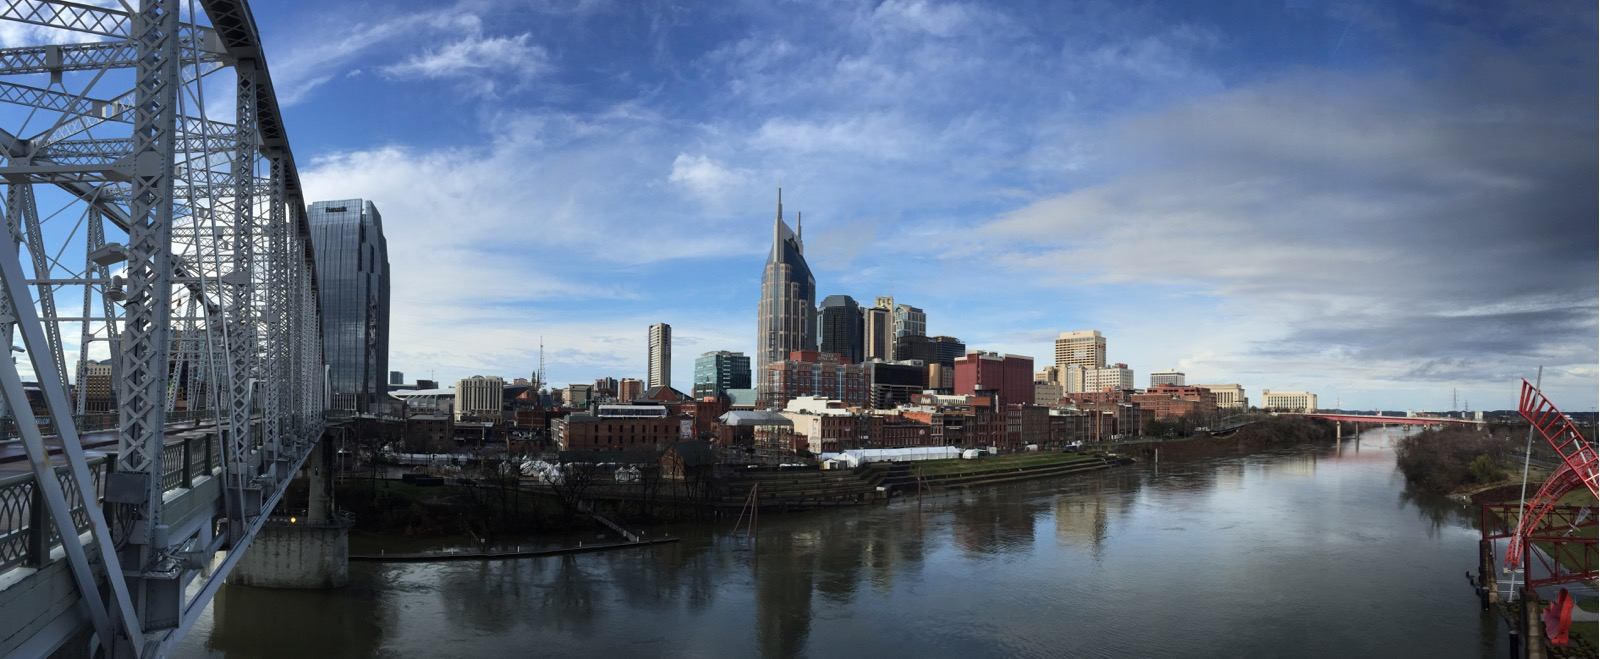 Nashville downtown from bridge